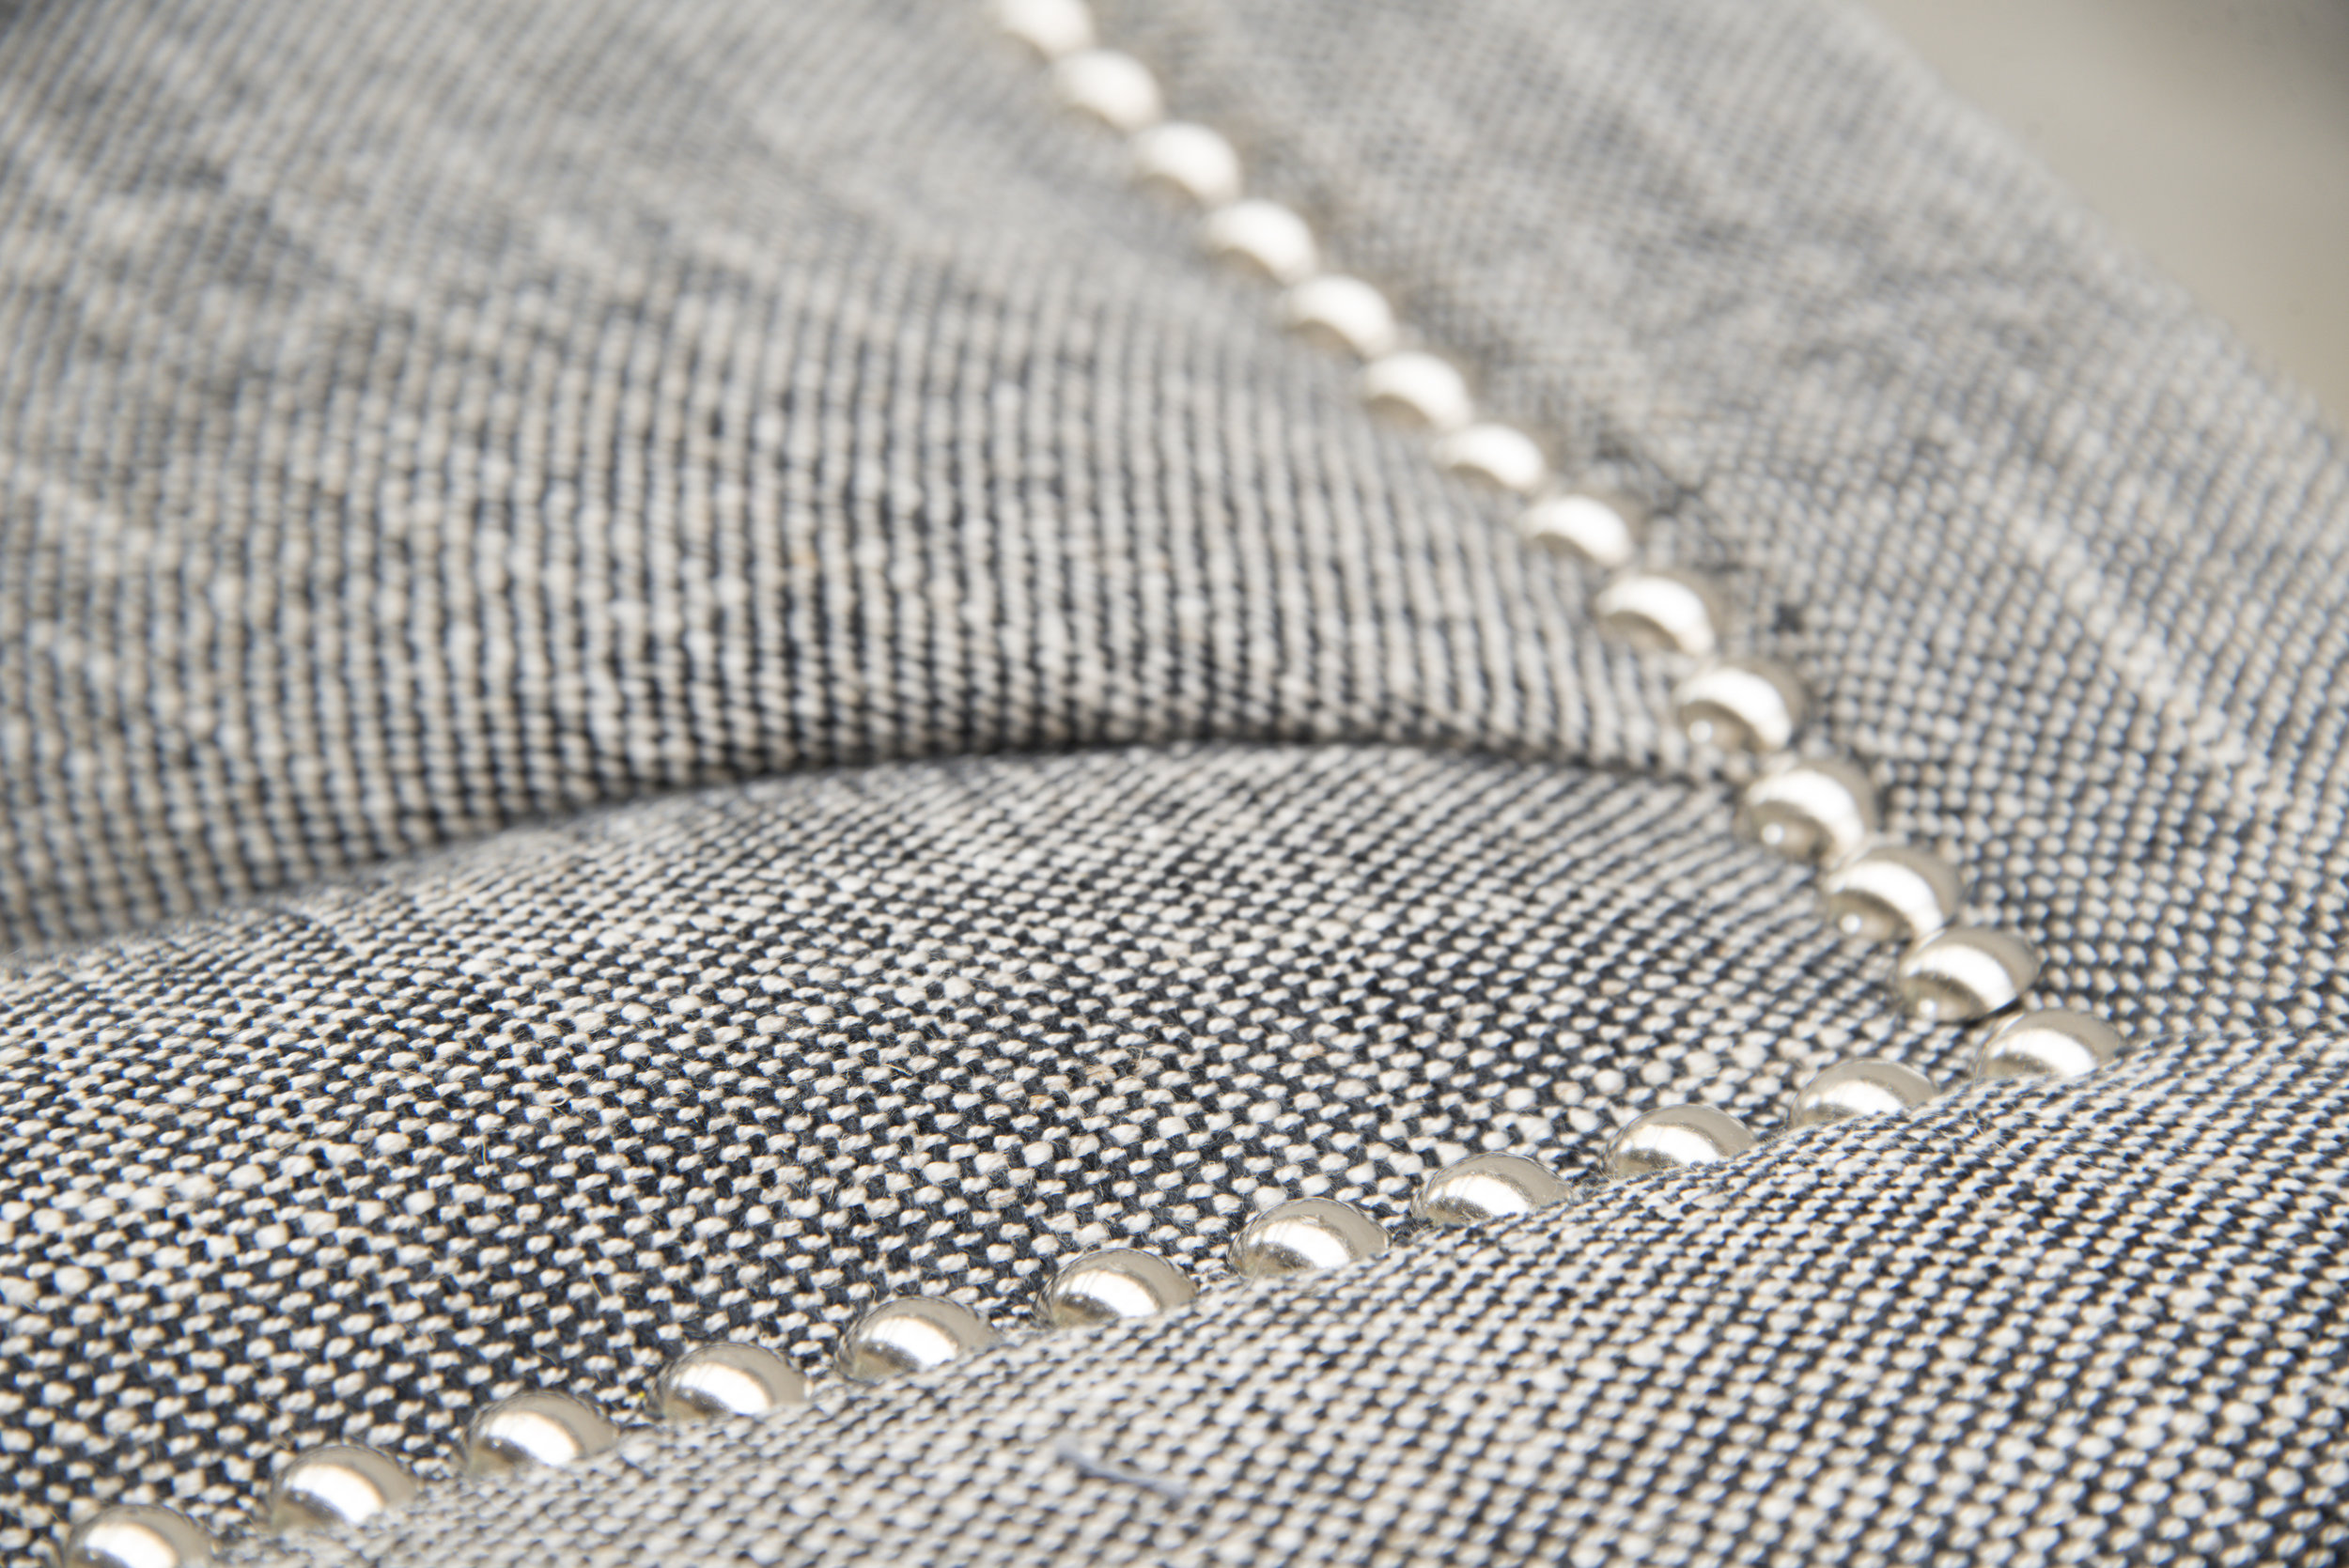 Selection of stud detailing or piping in fabric choices galore.